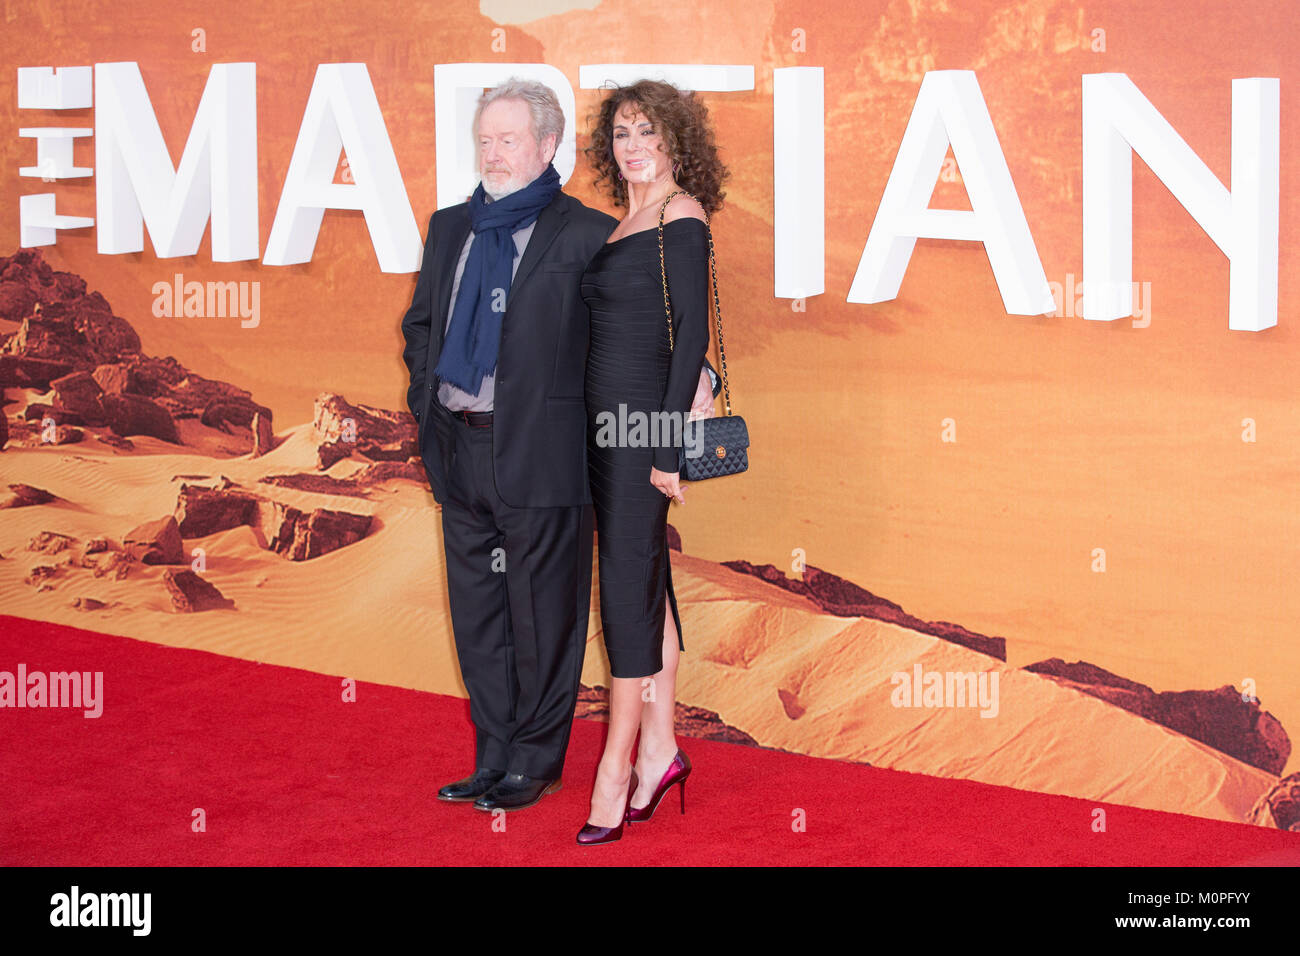 London, UK,  24 September 2015, Ridley Scott, European Premiere of 'The Martian' at the Odeon Leicester - Stock Image